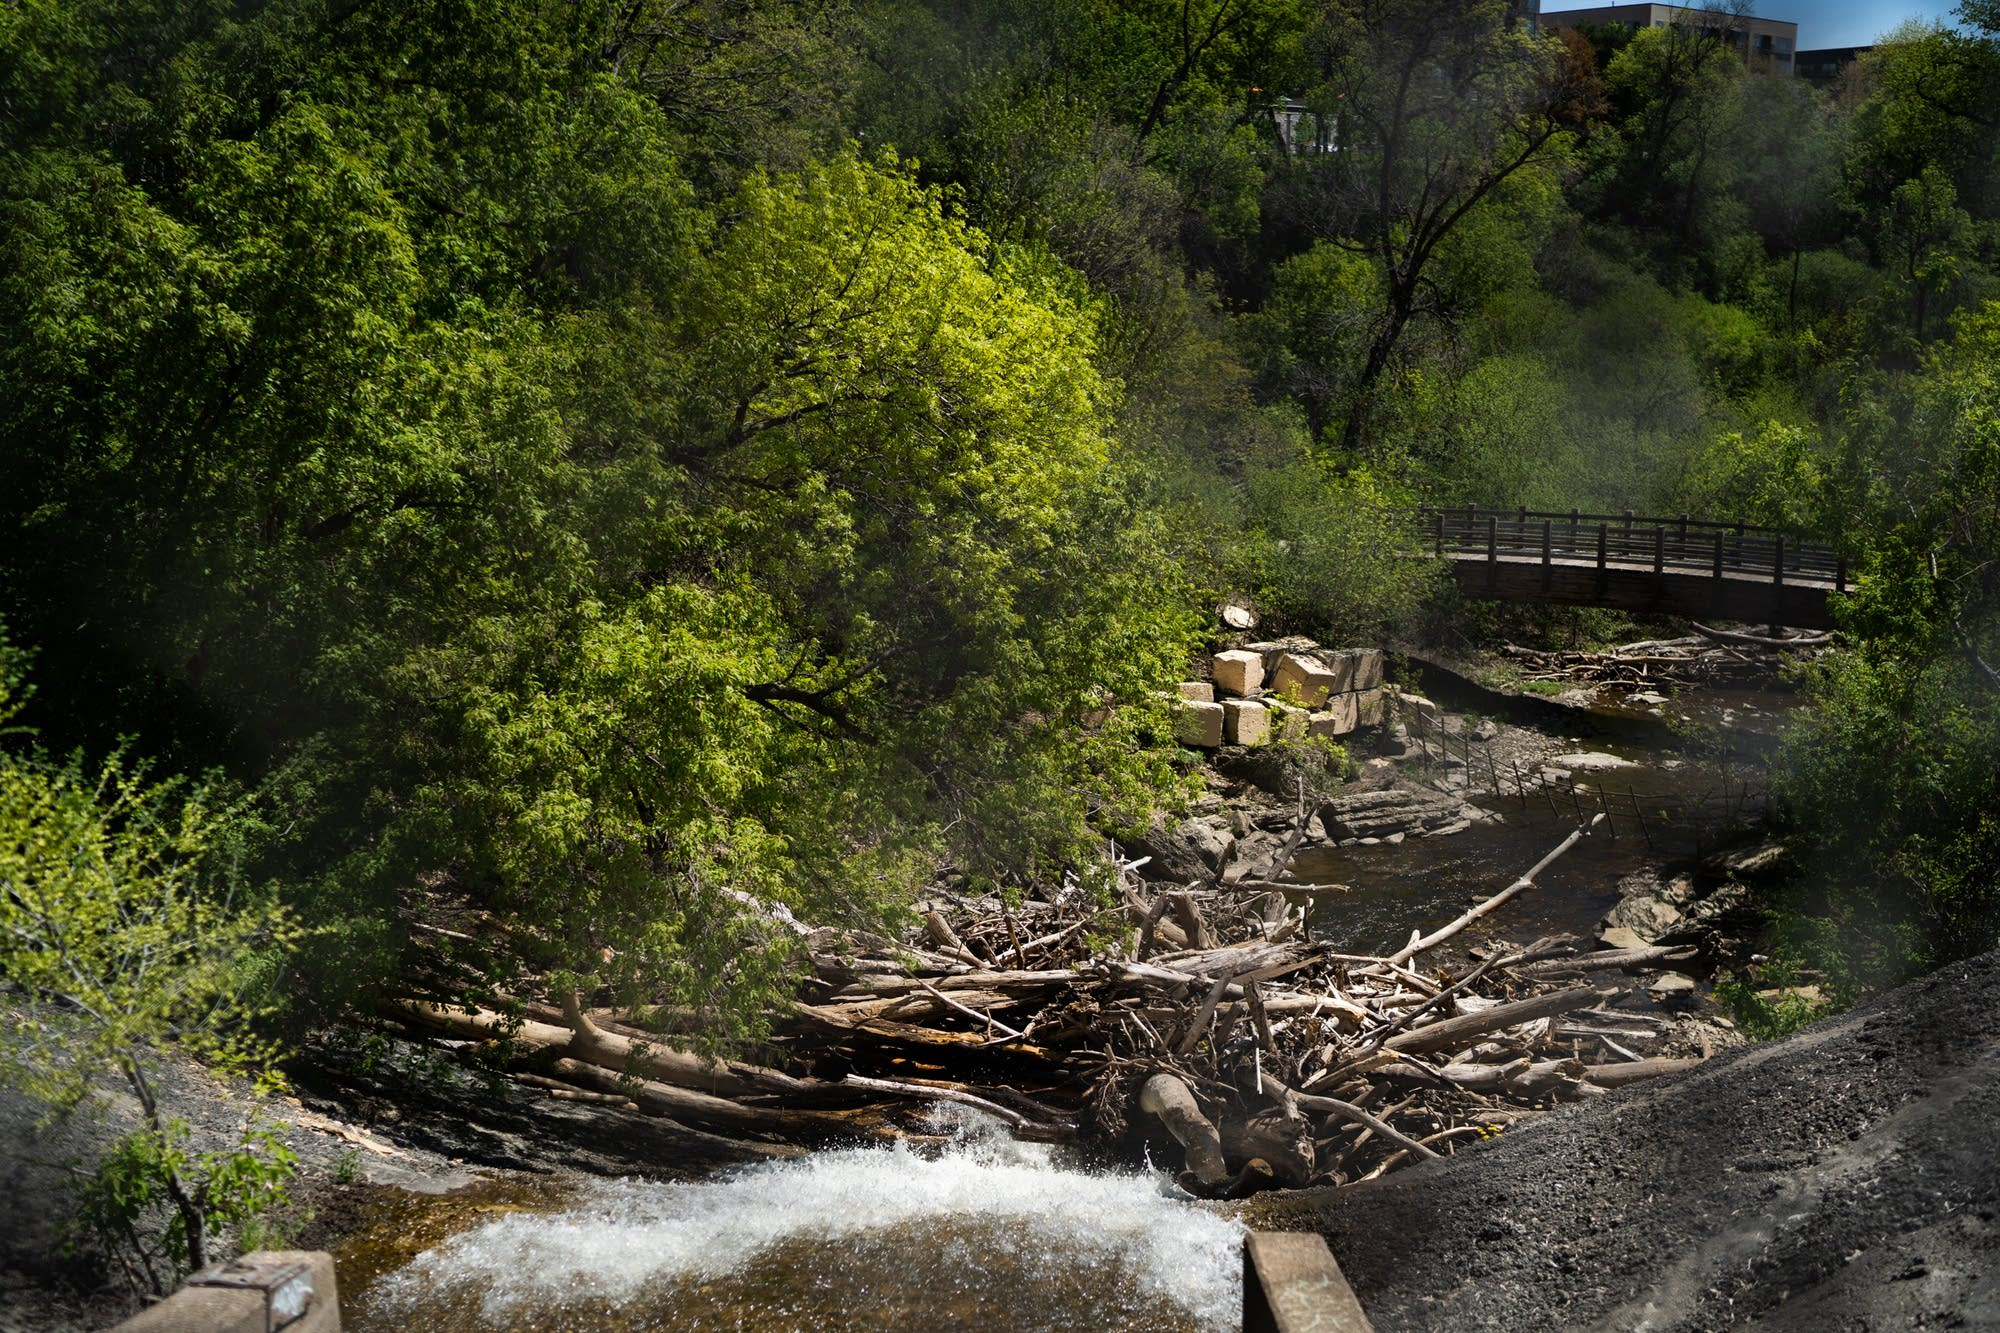 Wooden debris piles up at the bottom of the side spillway.